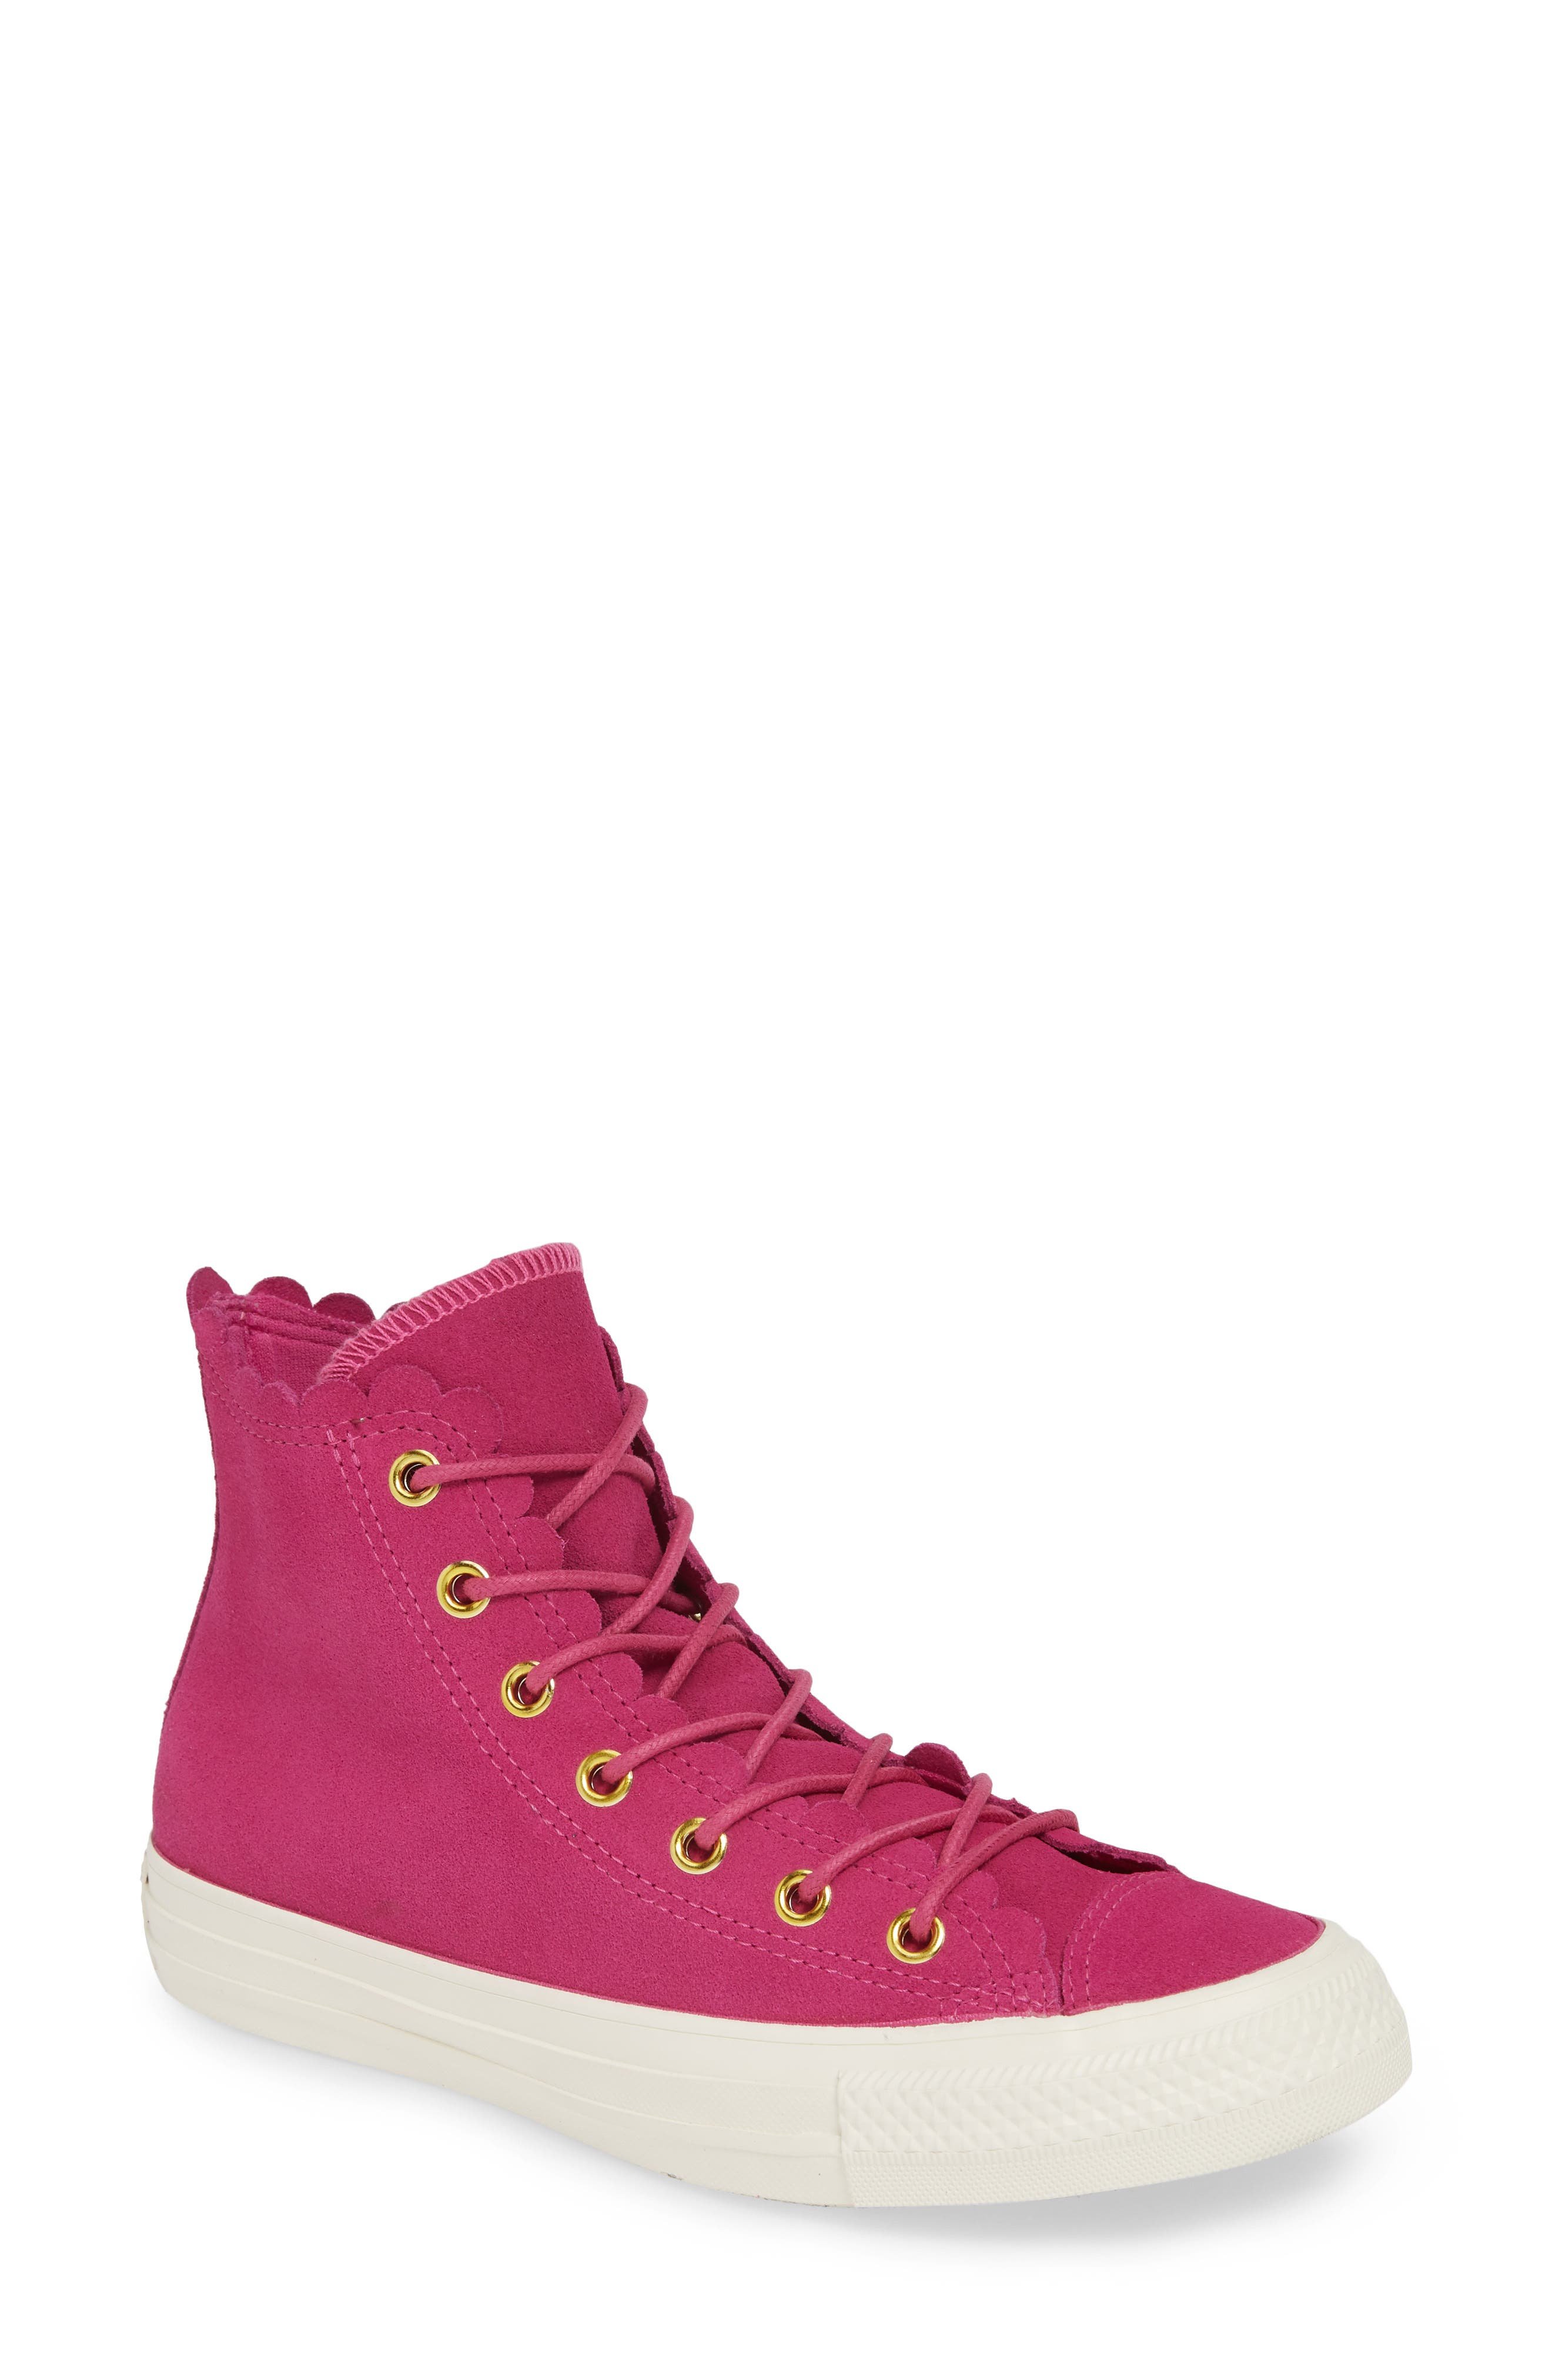 CONVERSE, Chuck Taylor<sup>®</sup> All Star<sup>®</sup> Scallop High Top Suede Sneaker, Main thumbnail 1, color, ACTIVE FUCHSIA/ GOLD/ EGRET